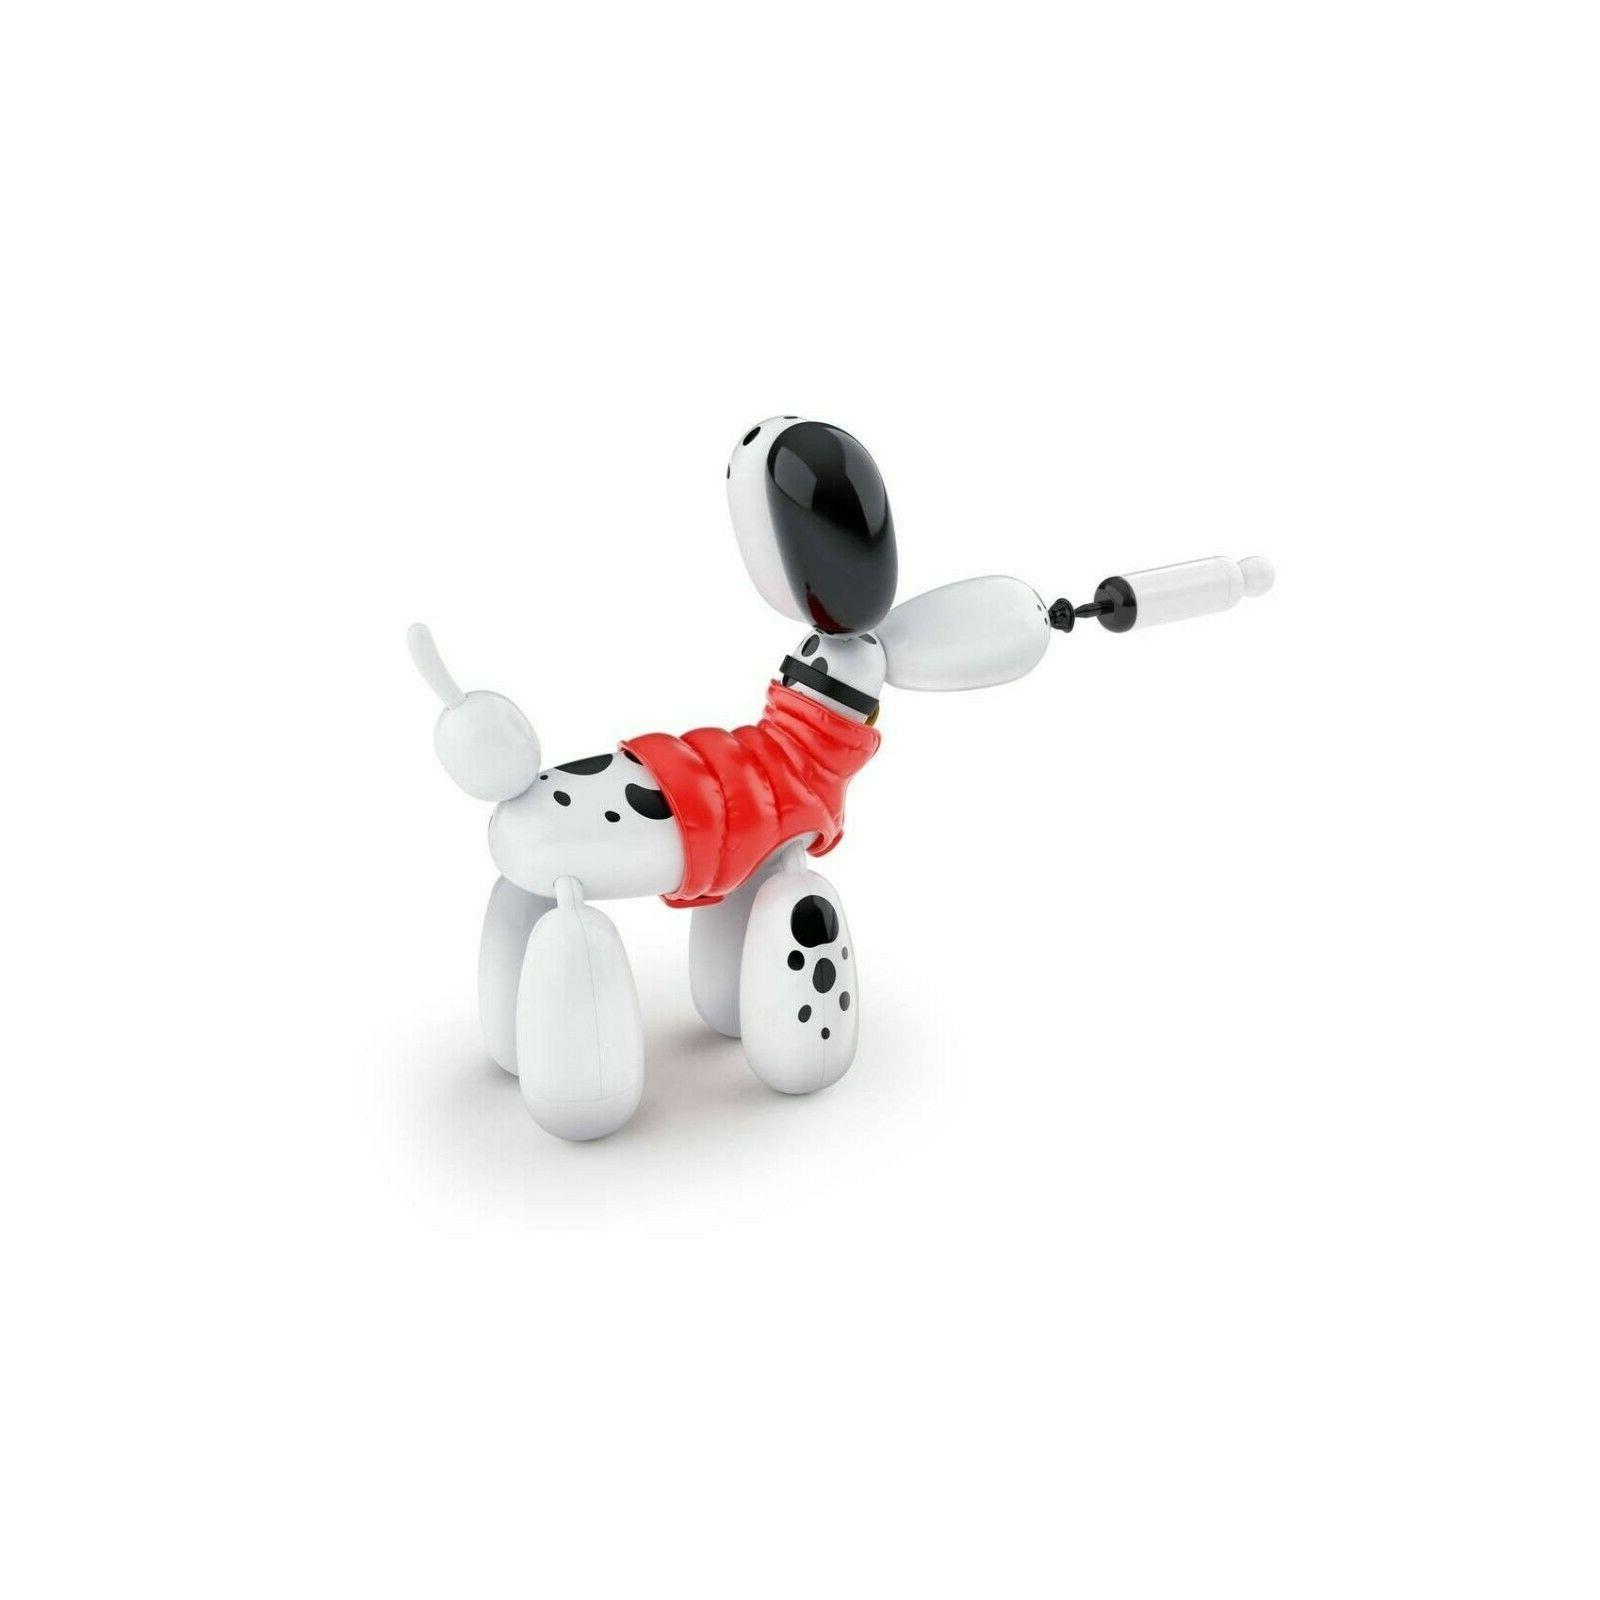 Spotty Balloon Dog New for 2020!